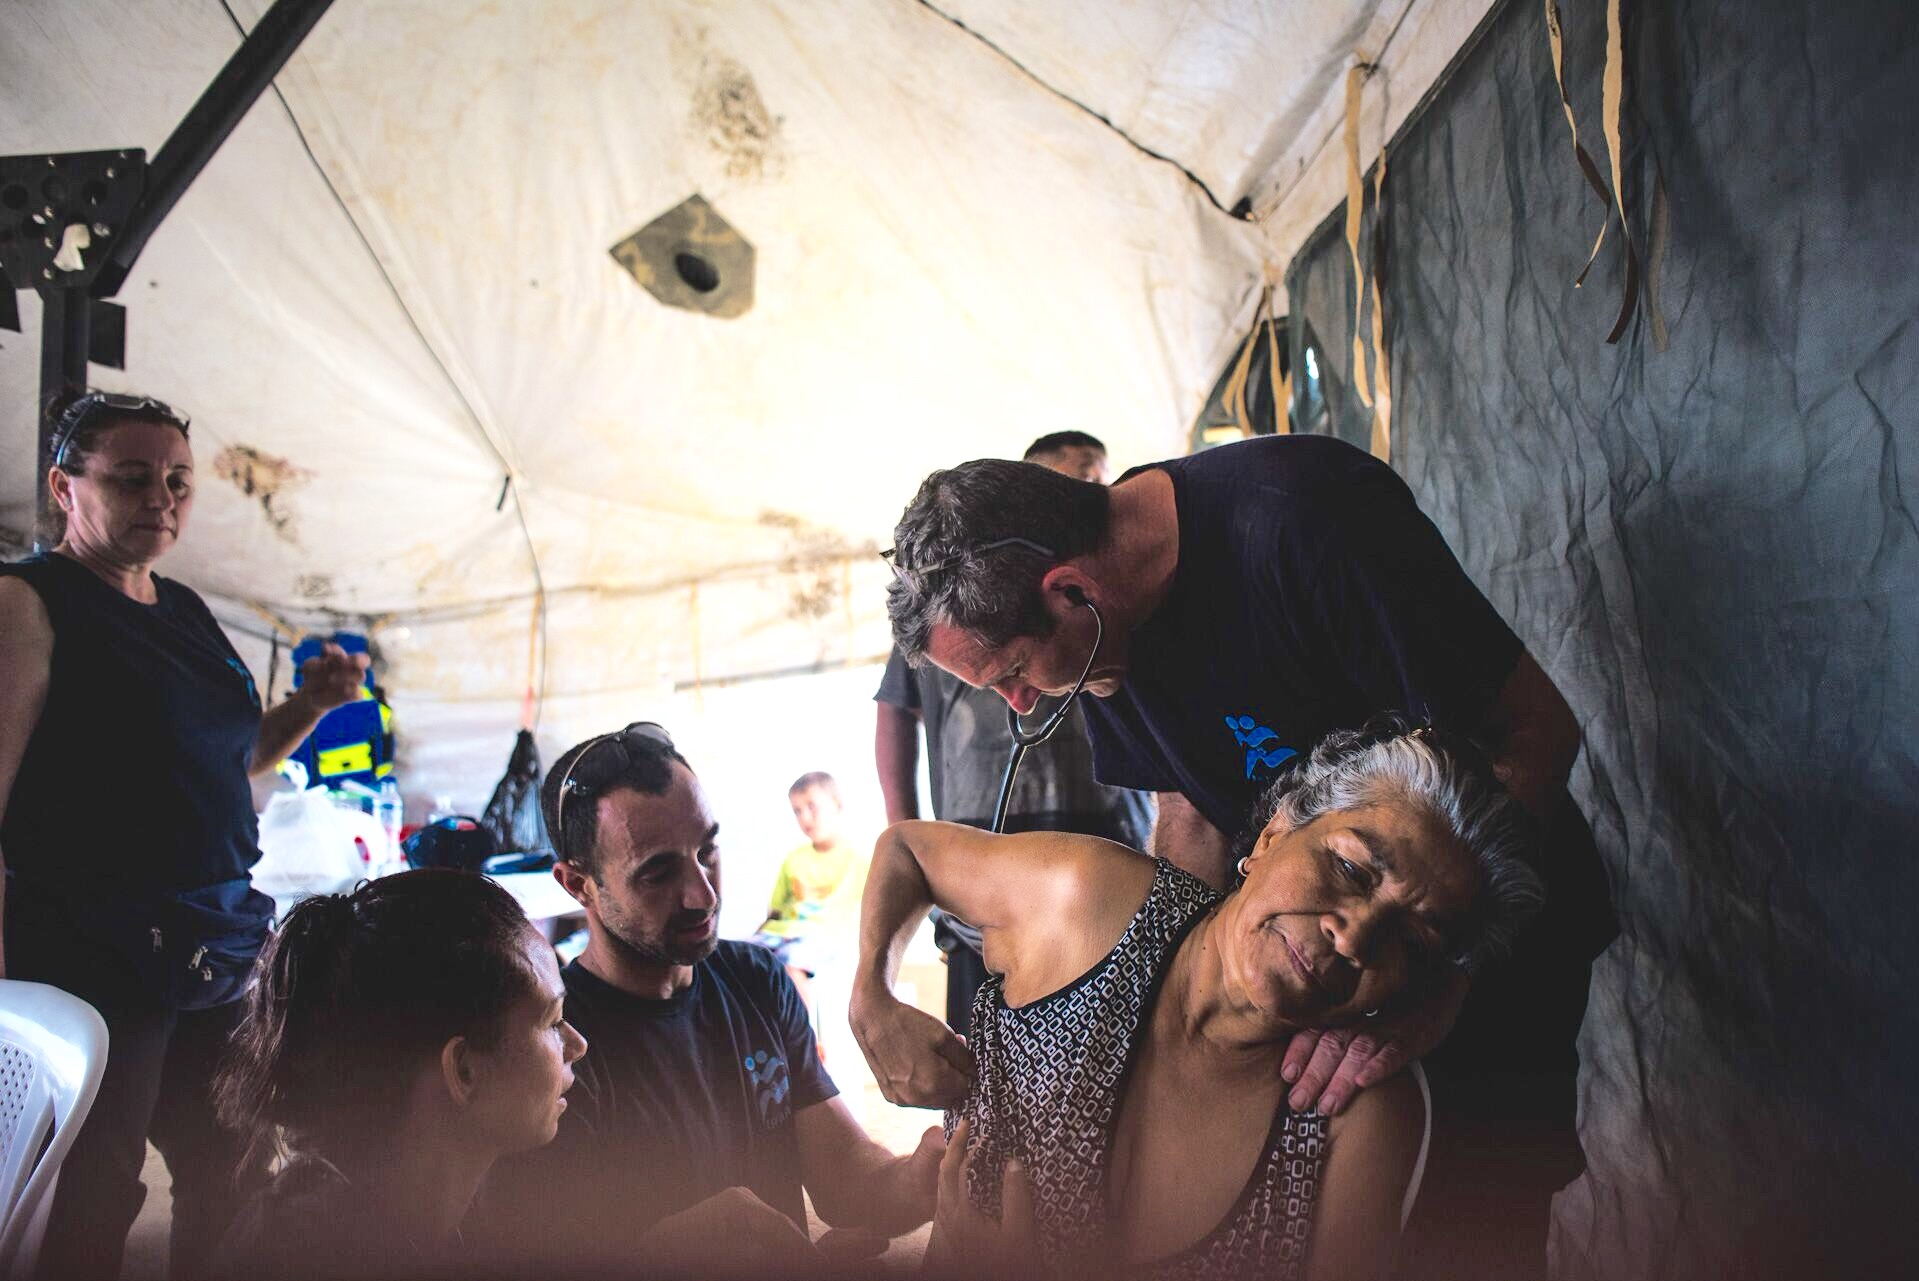 The field hospital – operating since April 23, 2016 -- is located in Canoa, near San Vincente. Photo via IsraAID